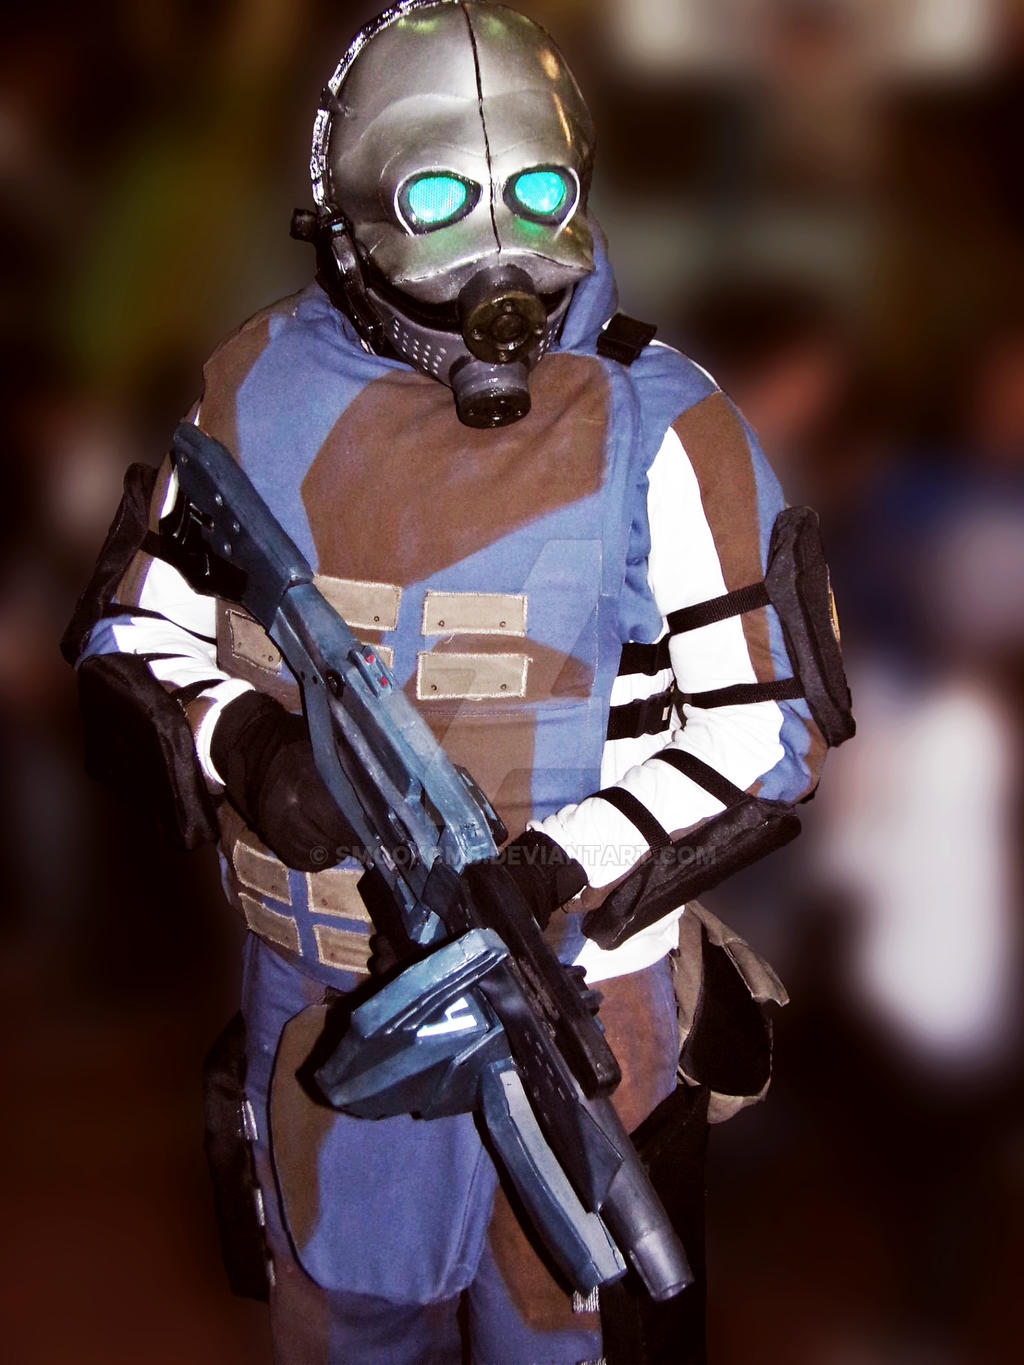 Combine Soldier from Half-Life 2 by SmookCMb on DeviantArt